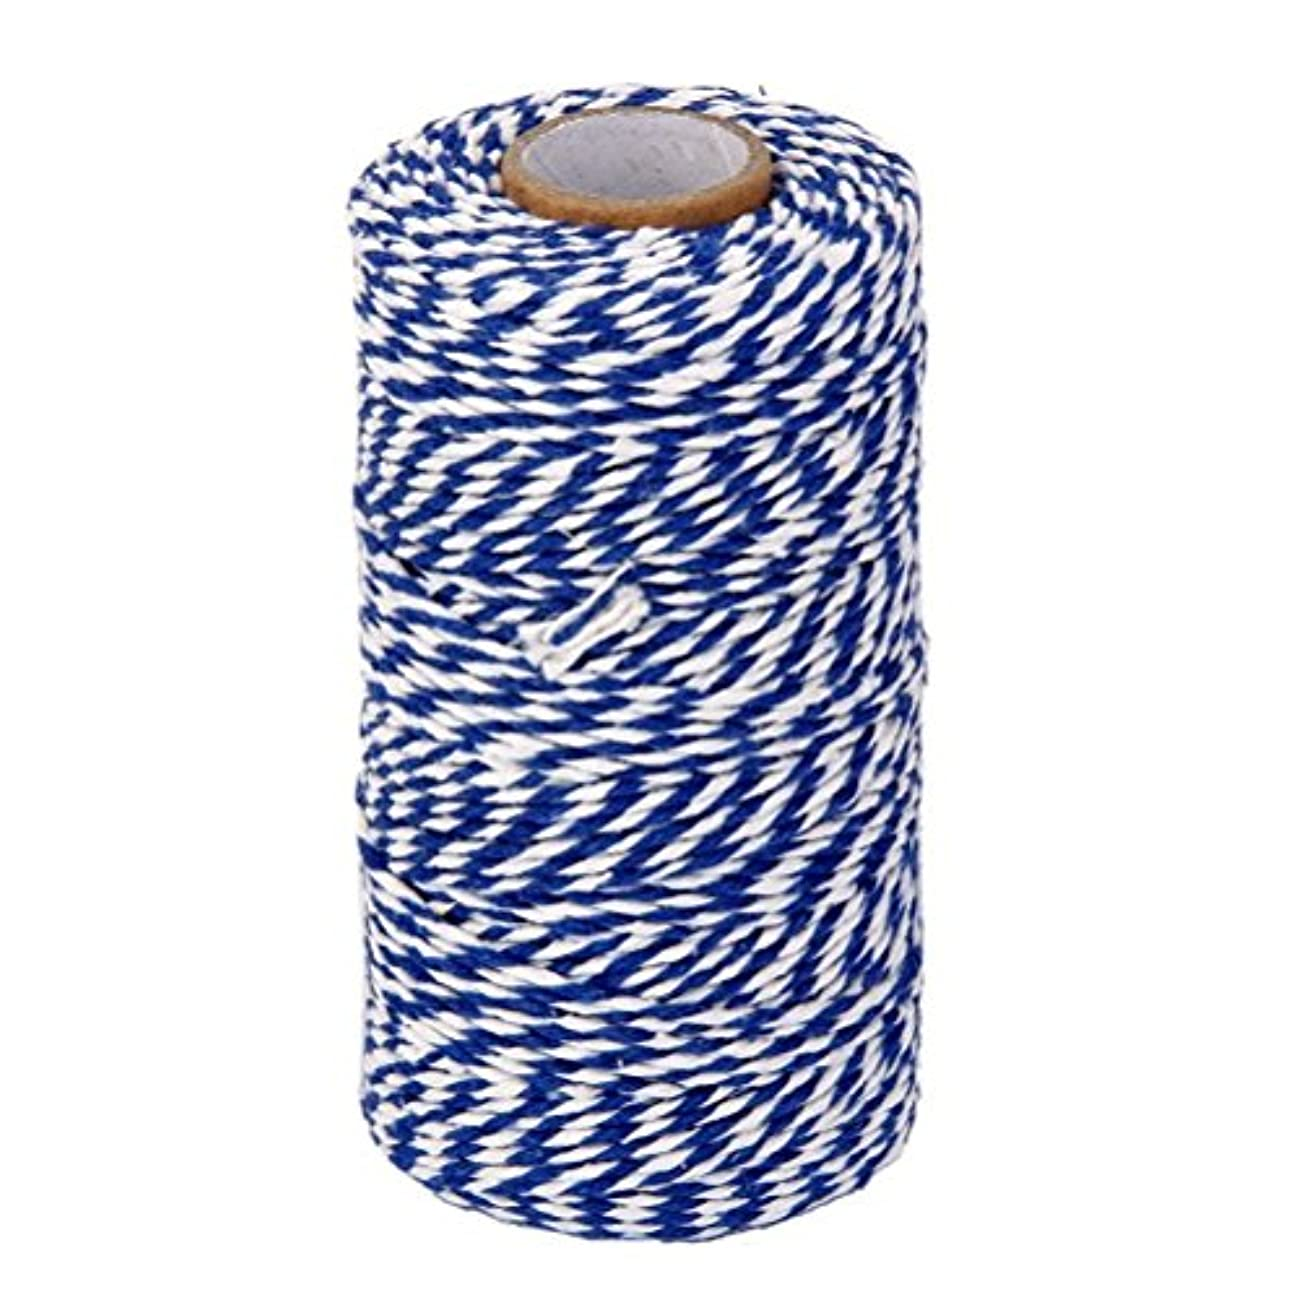 OxoxO 100YD White + Blue Wrap Gift Cotton Rope Ribbon Twine Rope Bottle Gift Box Line Design 2MM